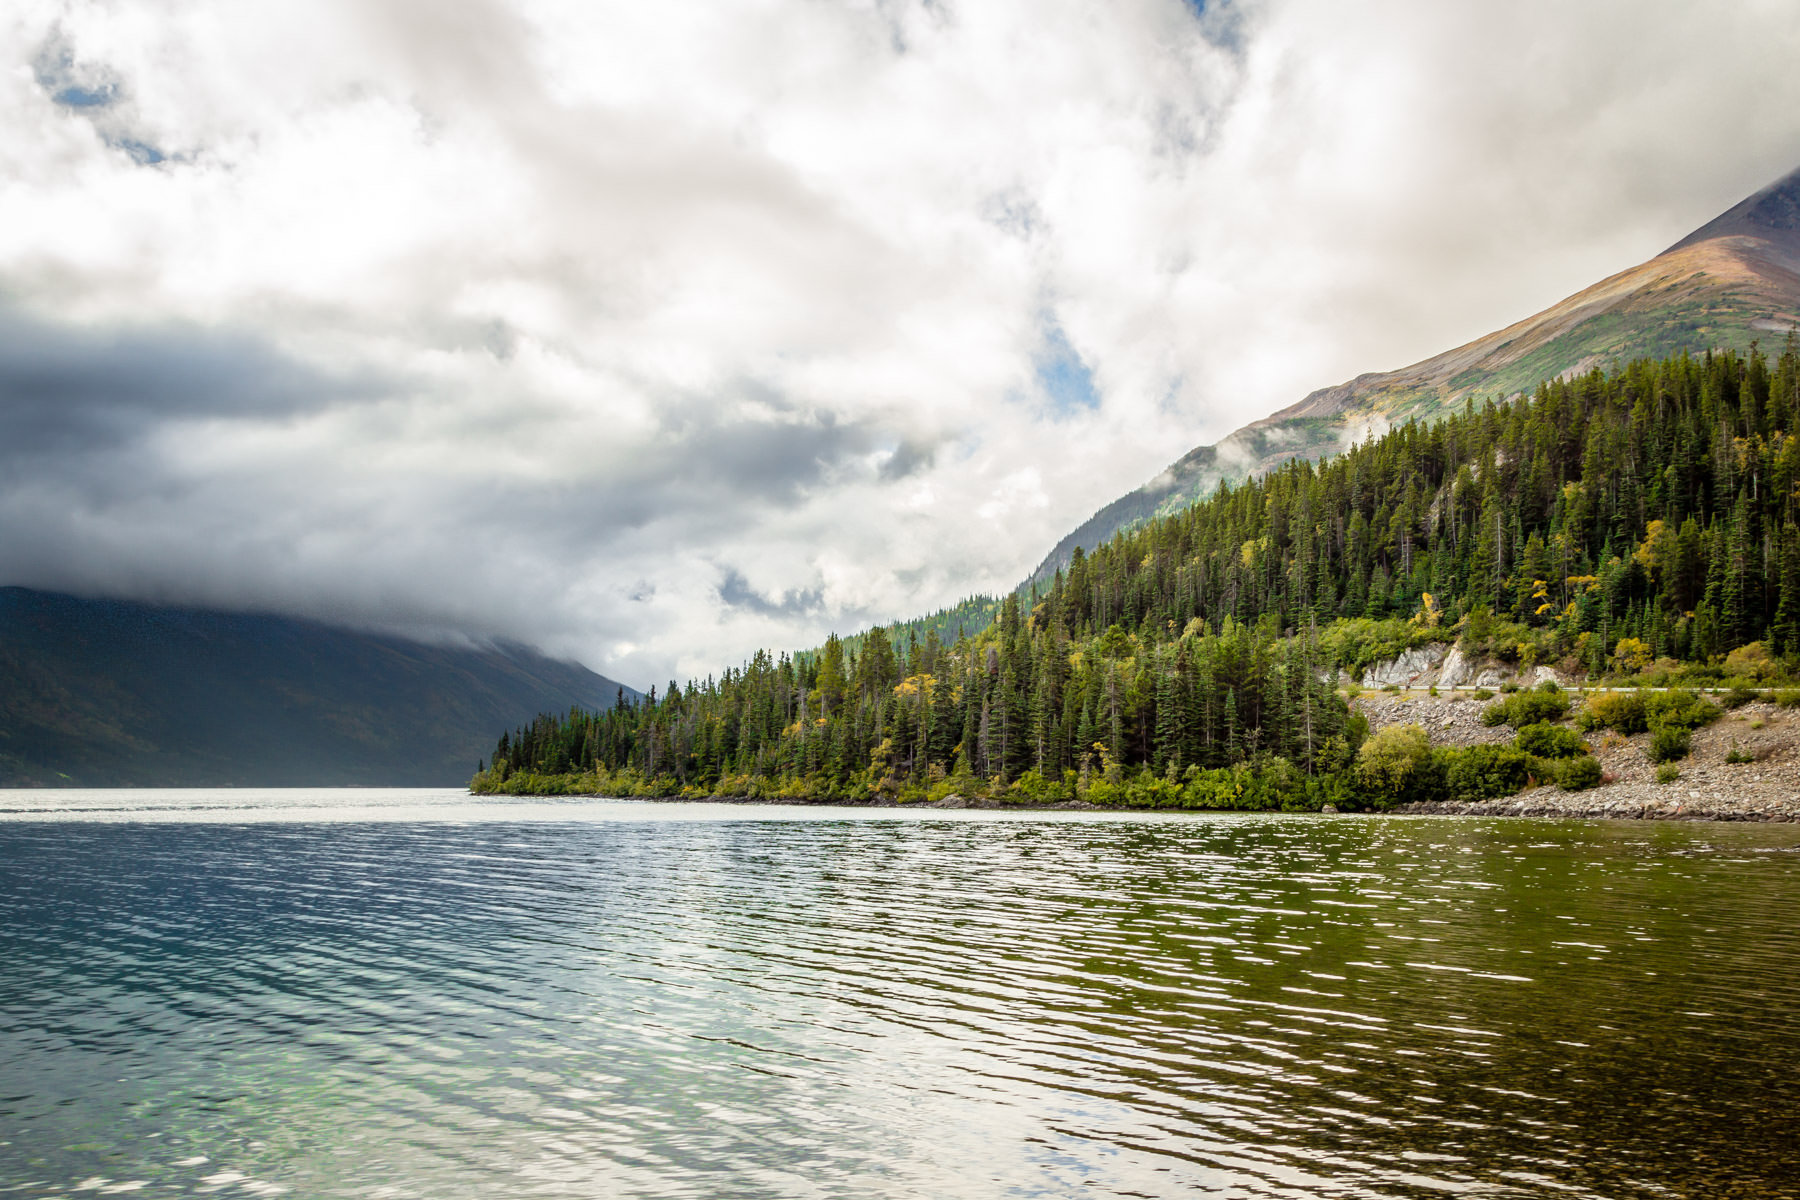 The tree-line shore of British Columbia, Canada's Tutshi Lake.